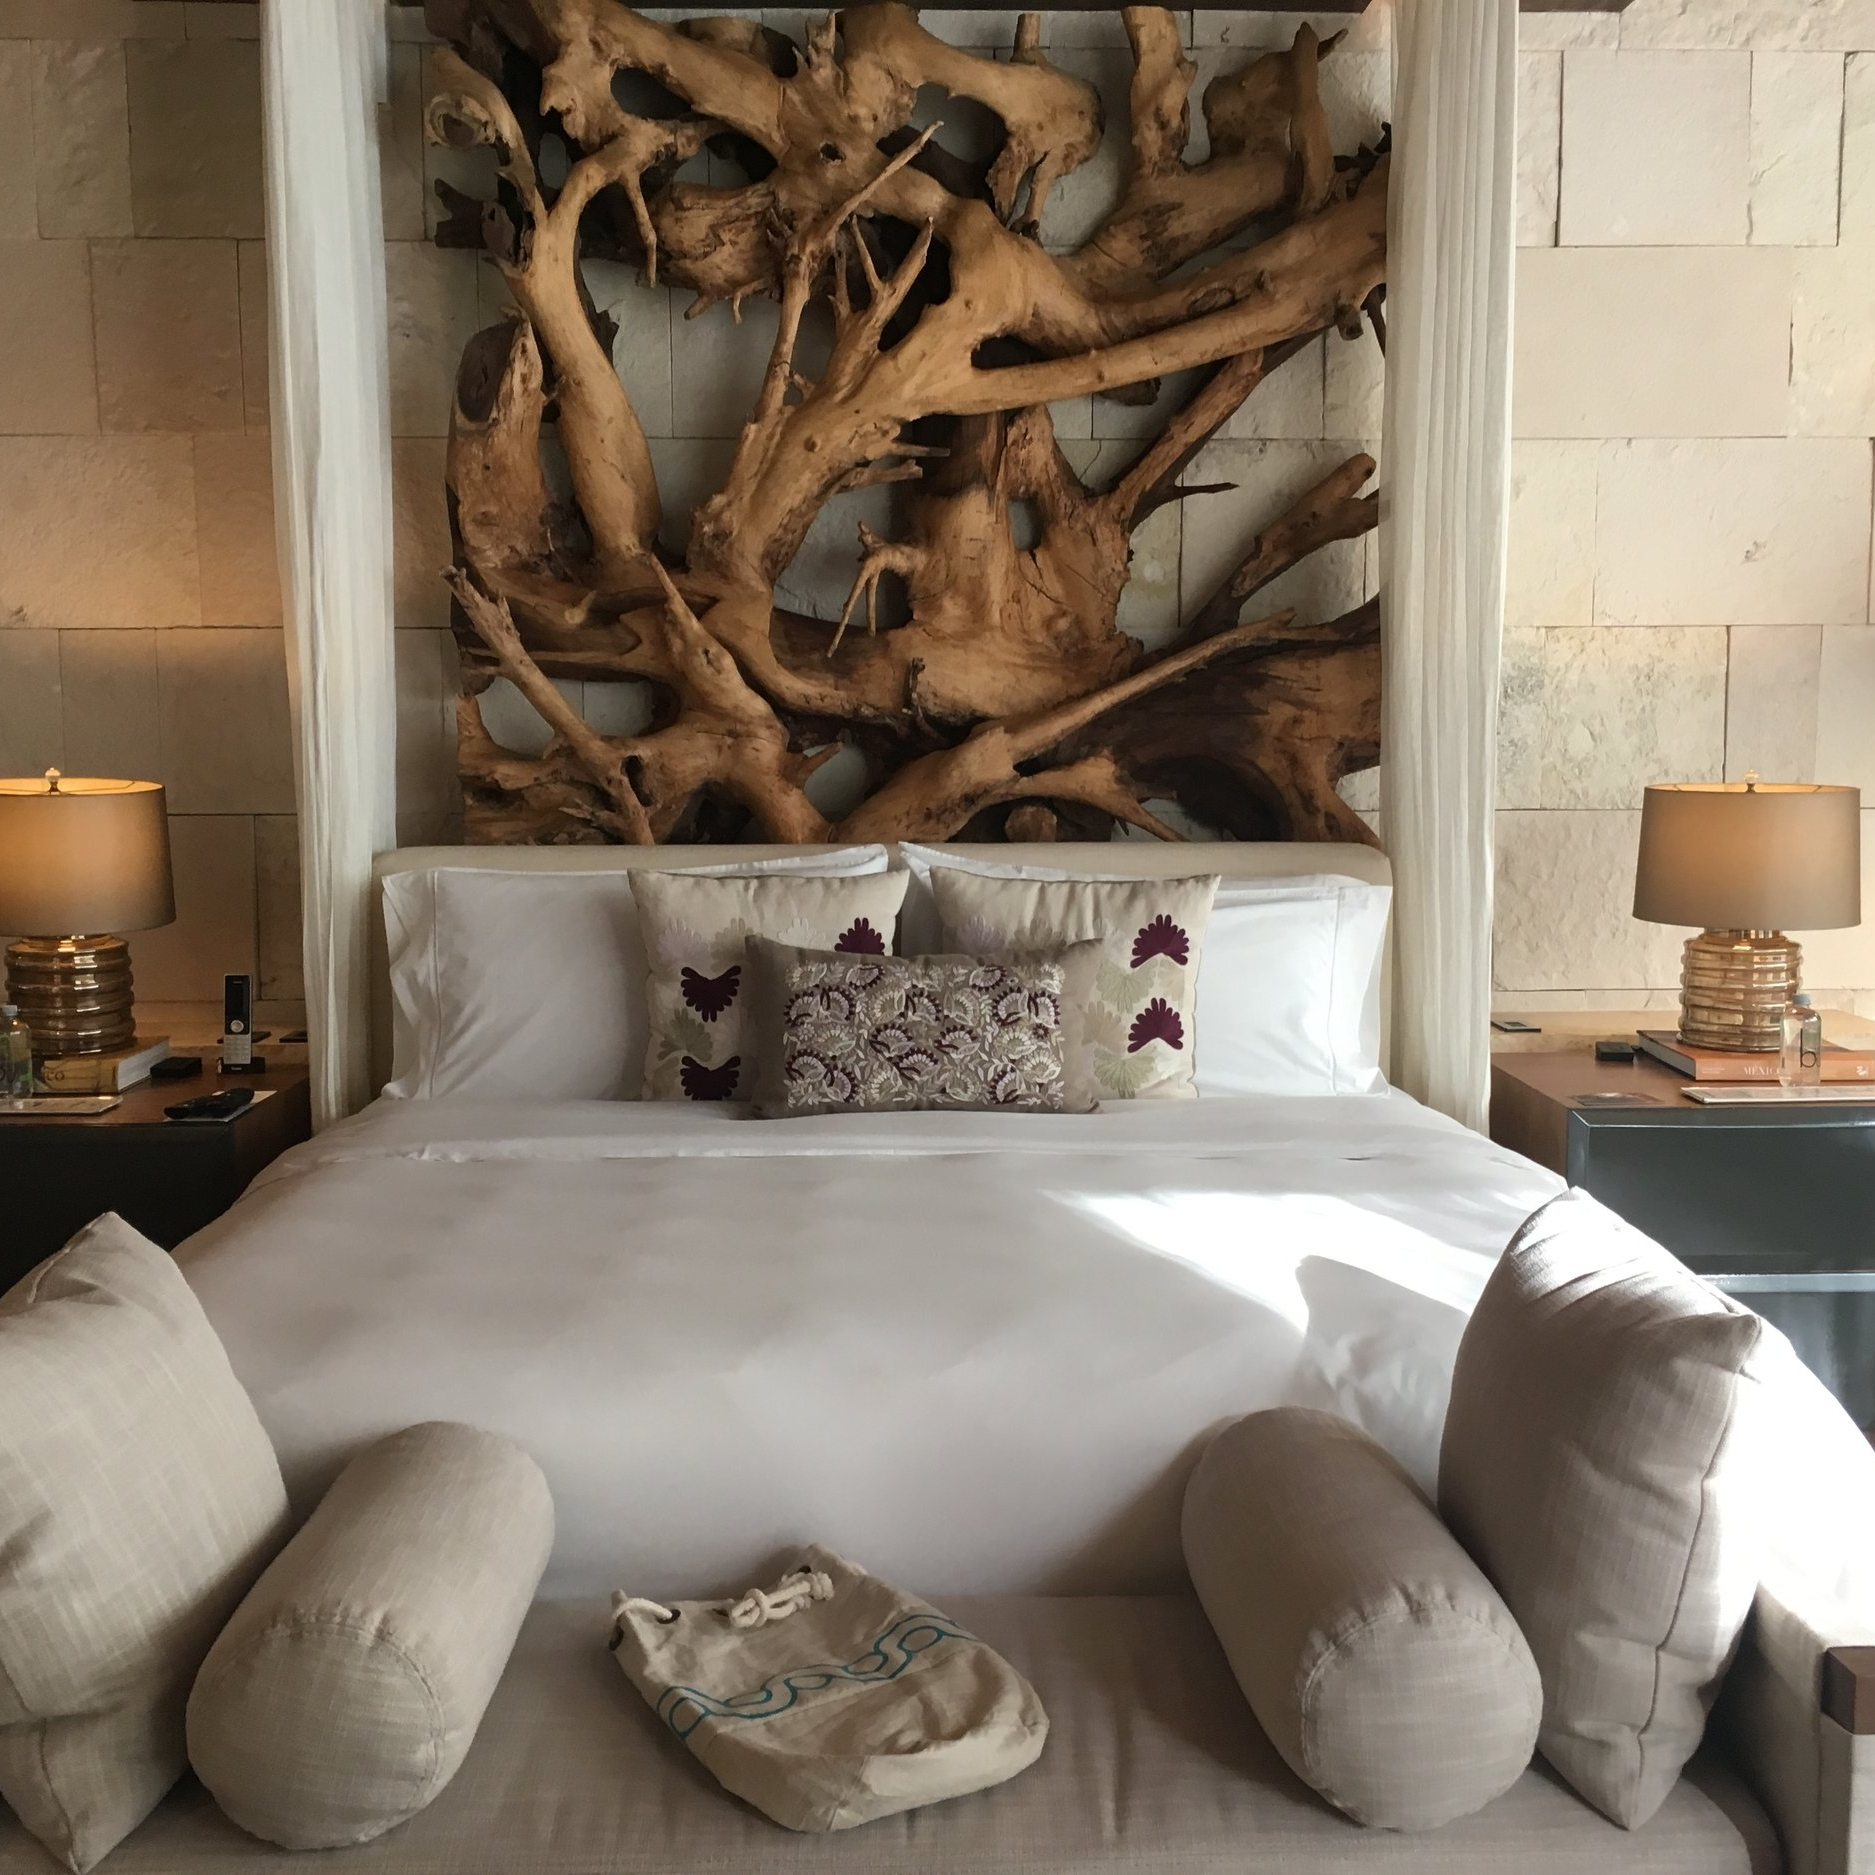 Warm, earthy tones and comfy interiors characterize accommodations at Chable.